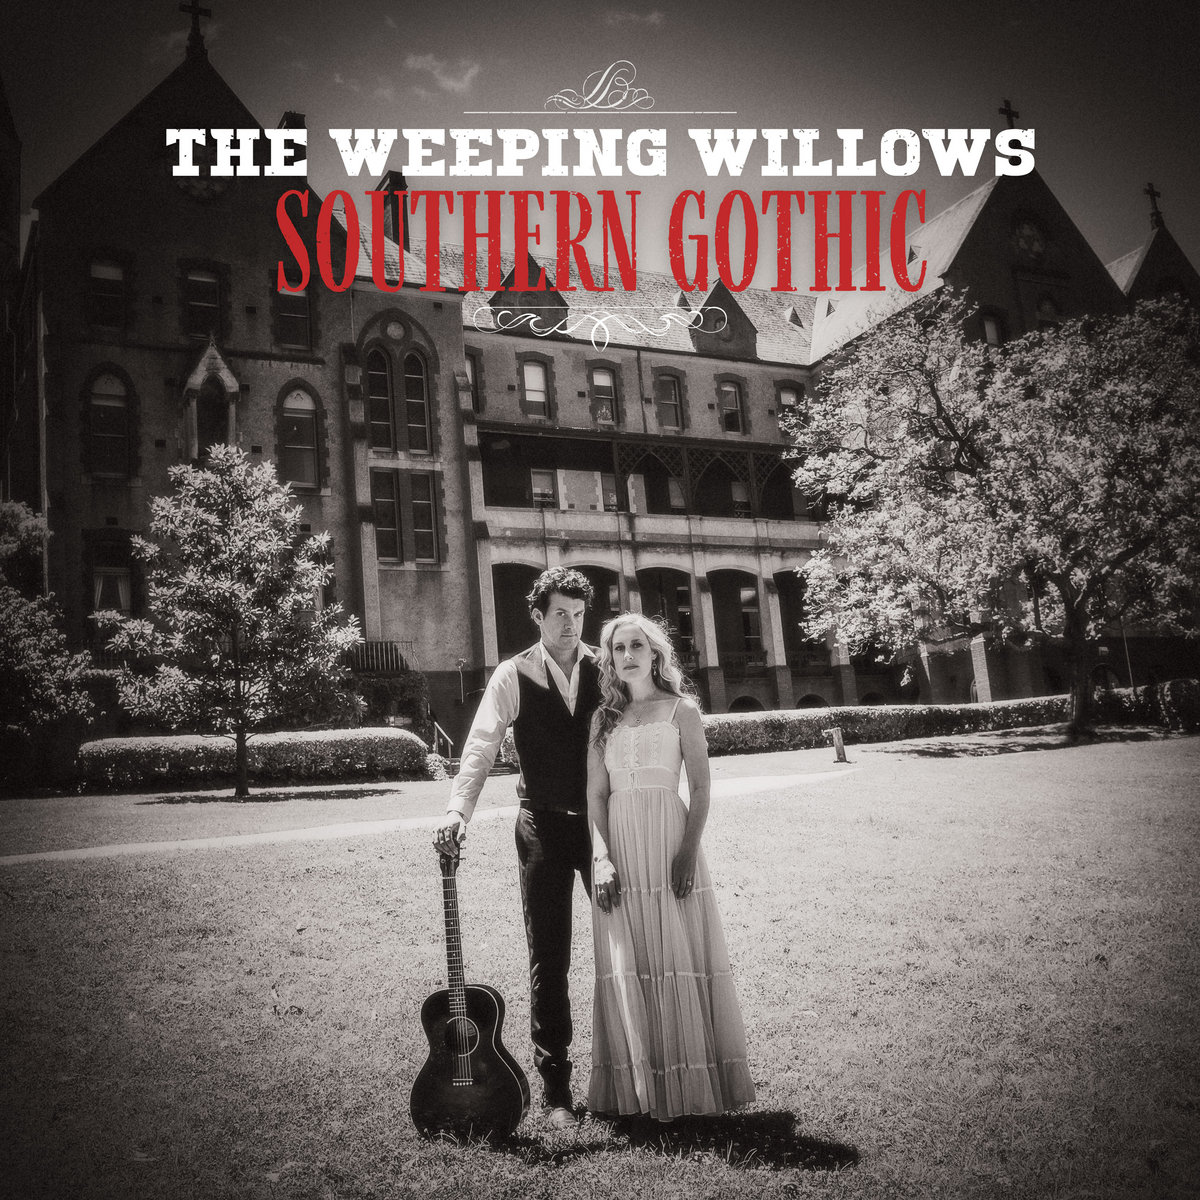 Southern Gothic | The Weeping Willows